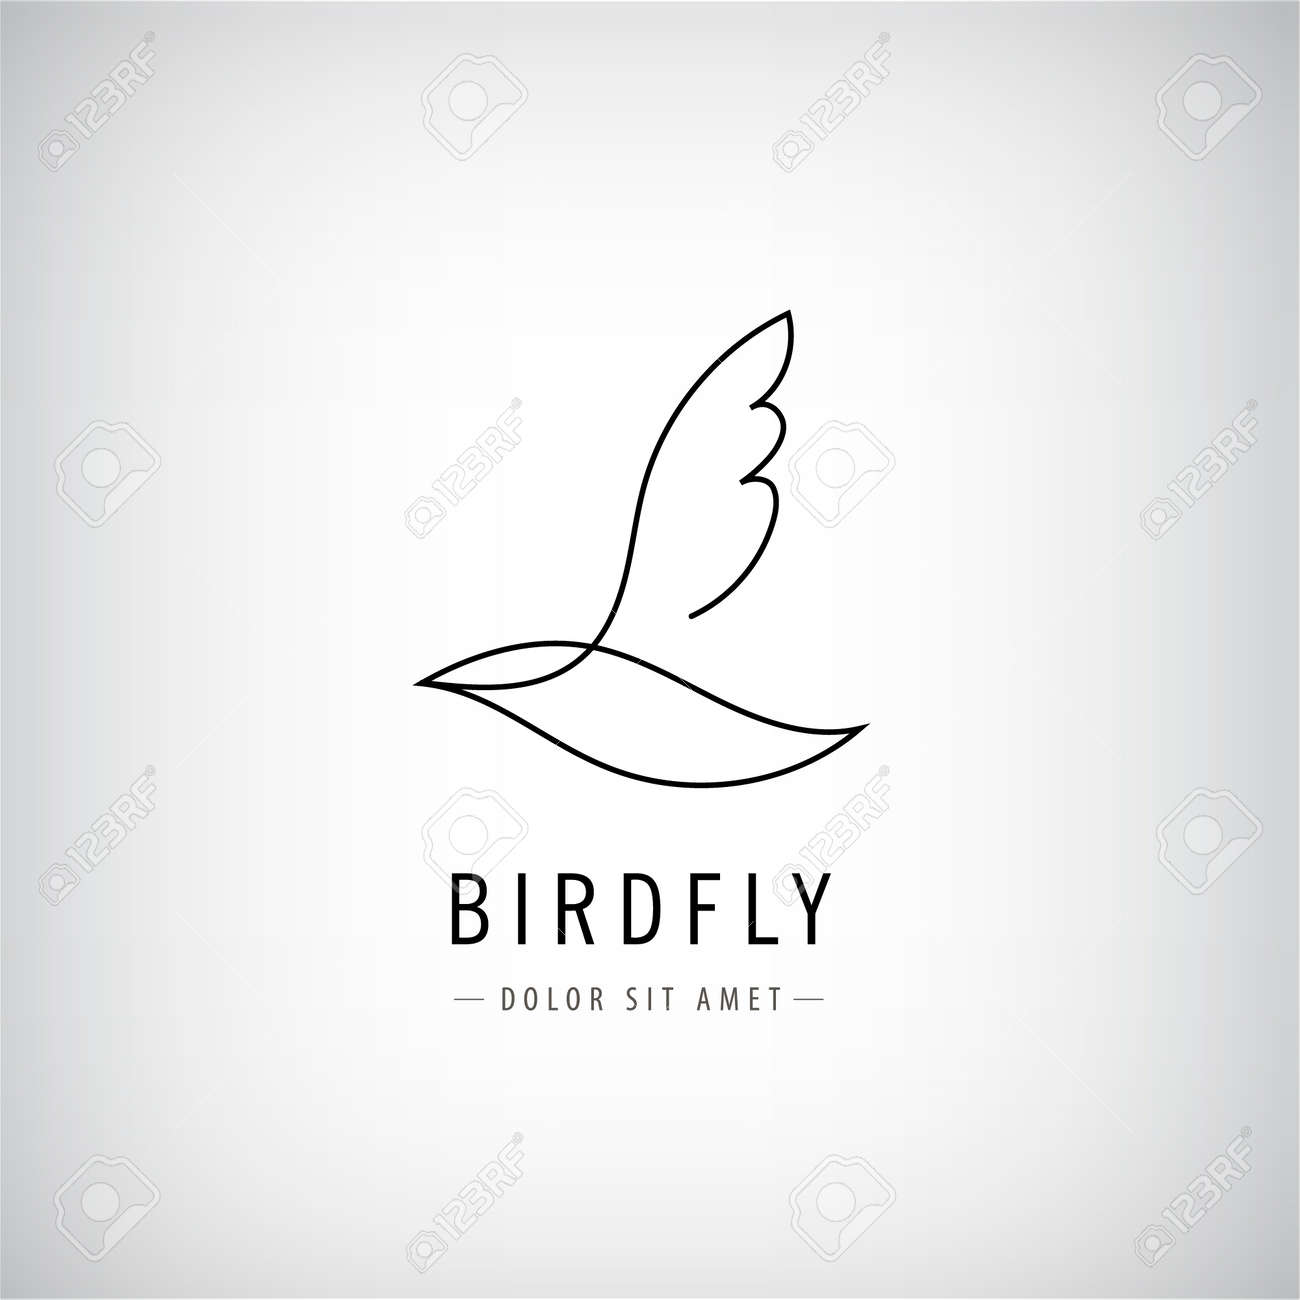 Vector one line bird logo, flying silhouette, continuous monoline concept, abstract icon, sign isolated. Use for print, brand, tatoo, art - 171129373